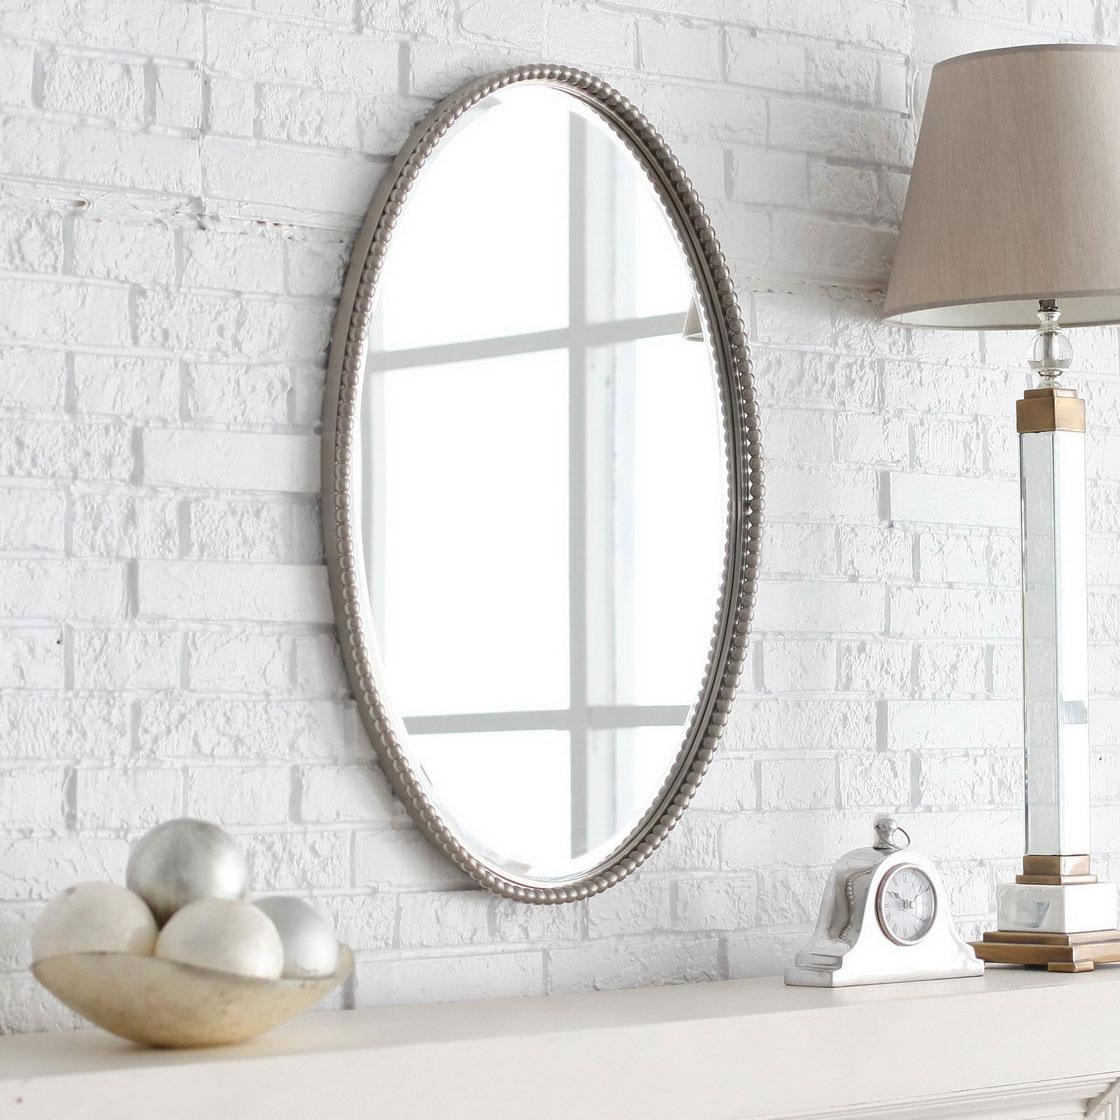 Elegant Large Oval Bathroom Mirrors 50 For Your With Large Oval For Antique White Oval Mirror (Image 12 of 20)